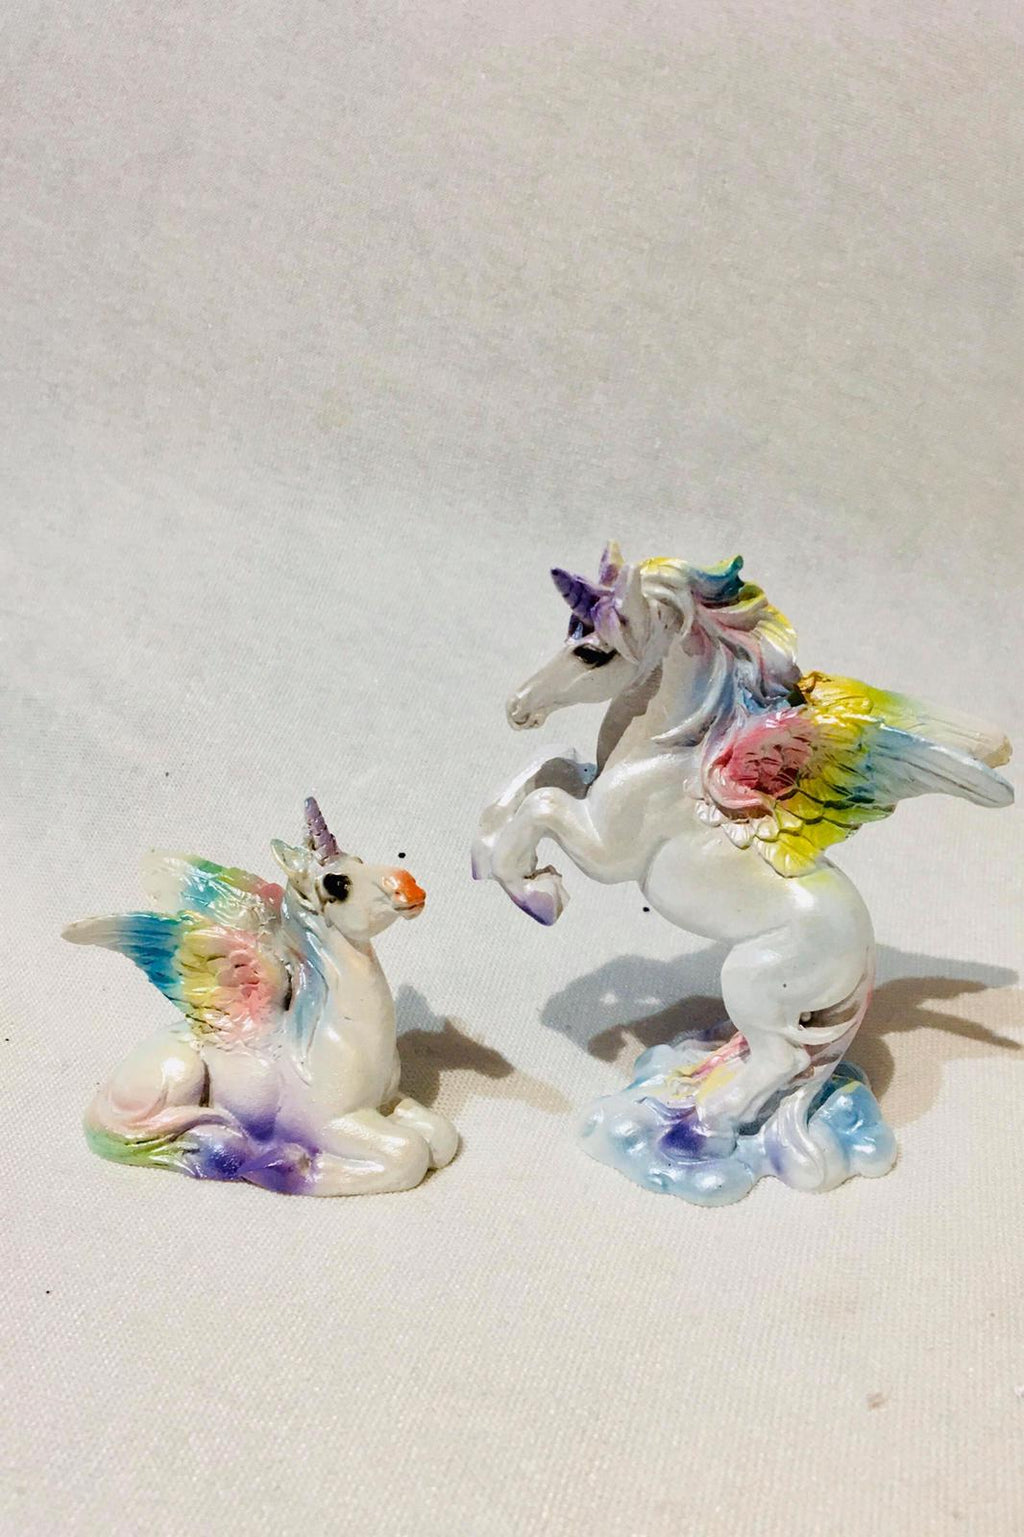 Rainbow unicorn figurines